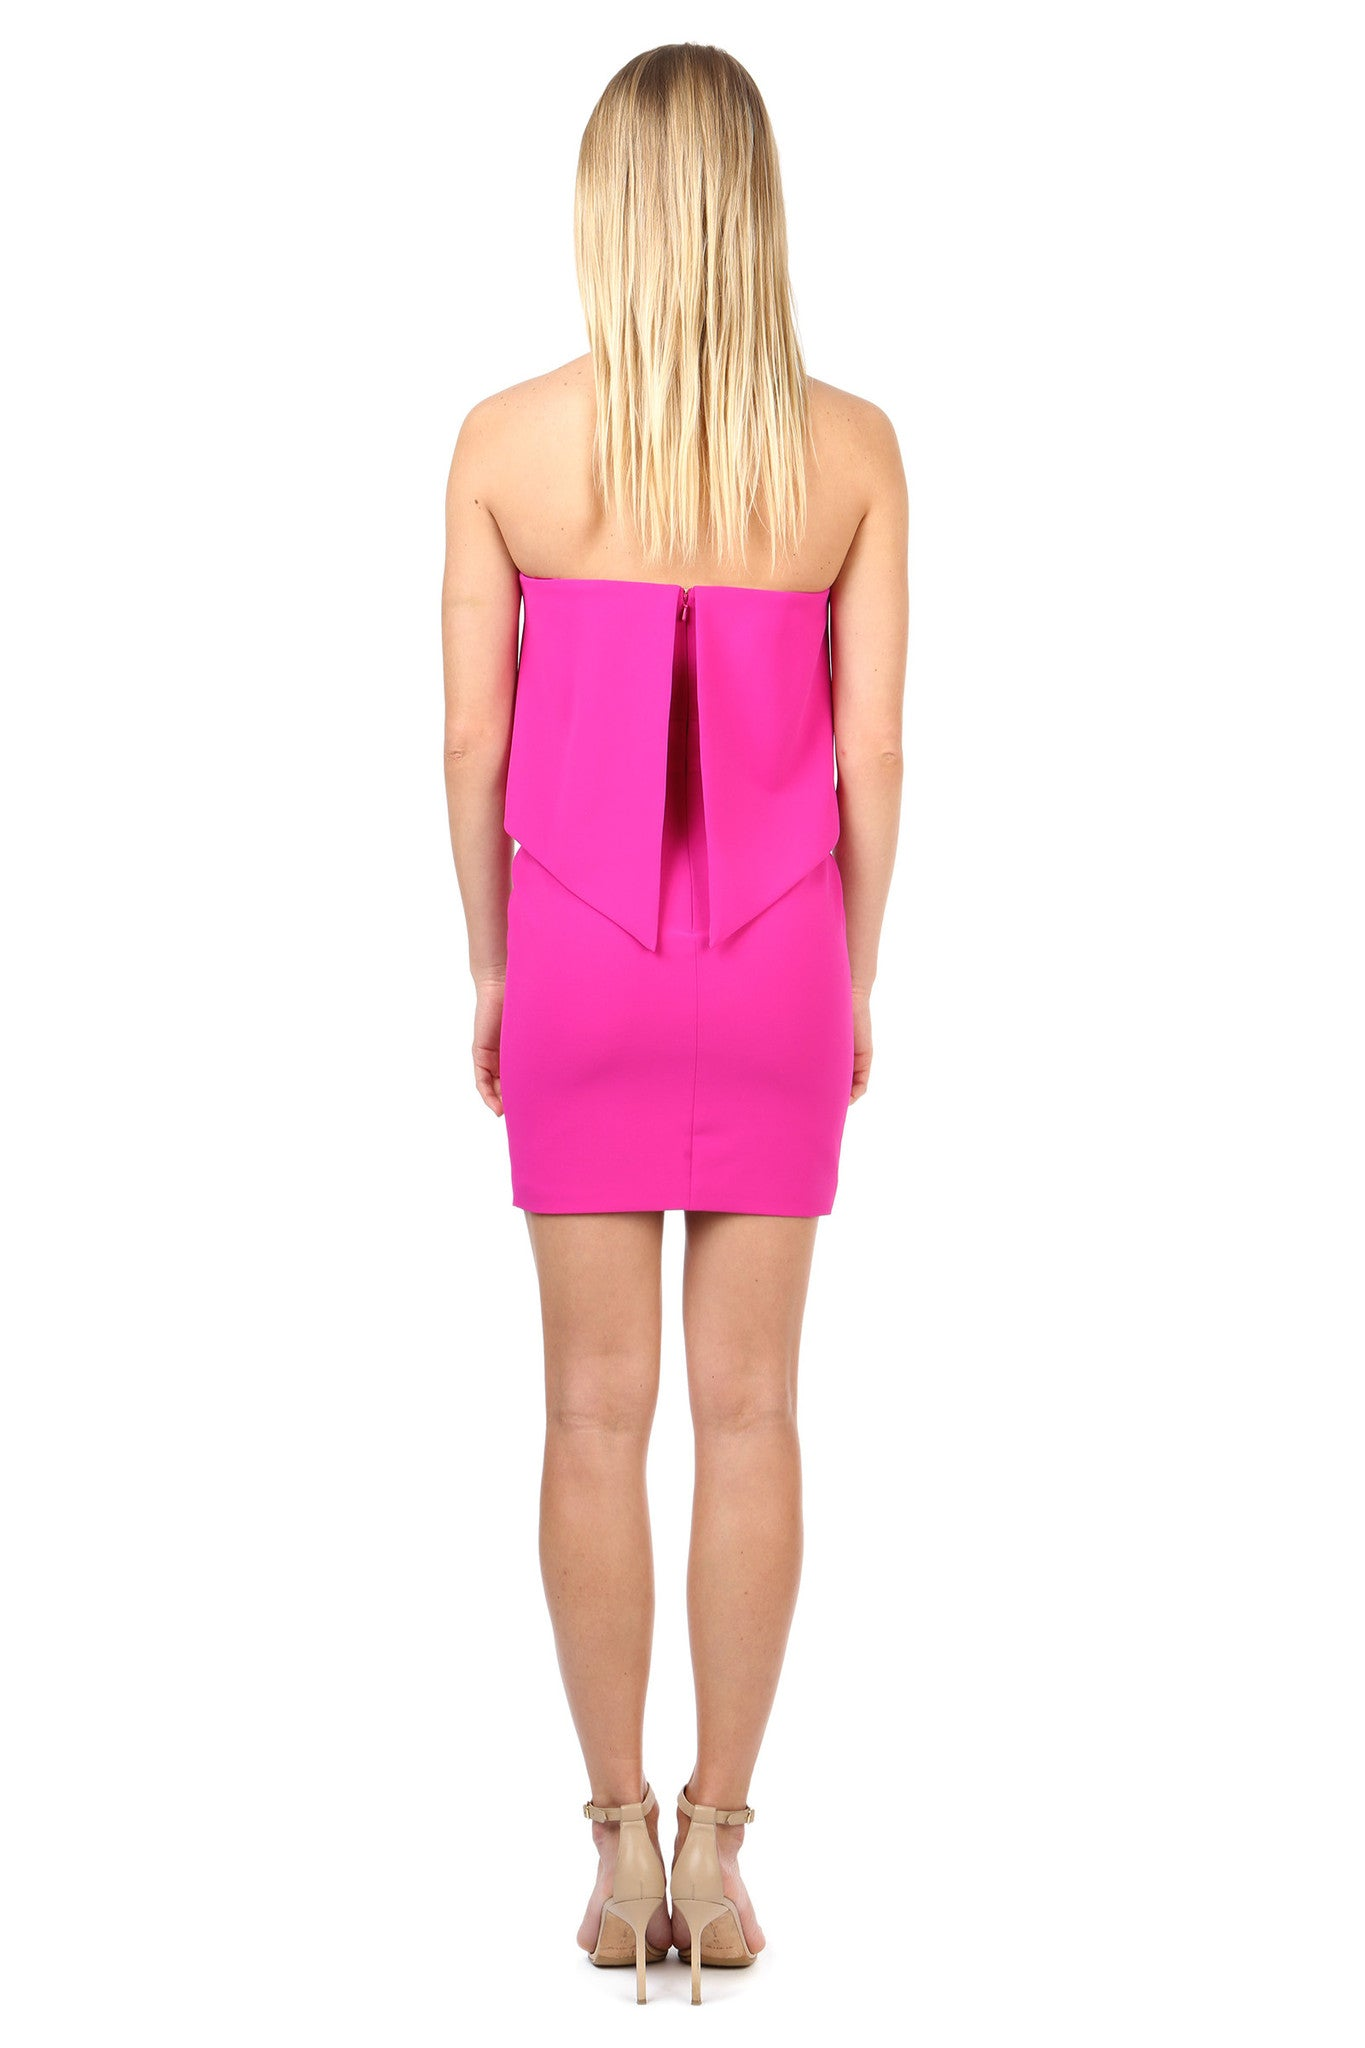 Jay Godfrey Fuschia Strapless Dress - Back View